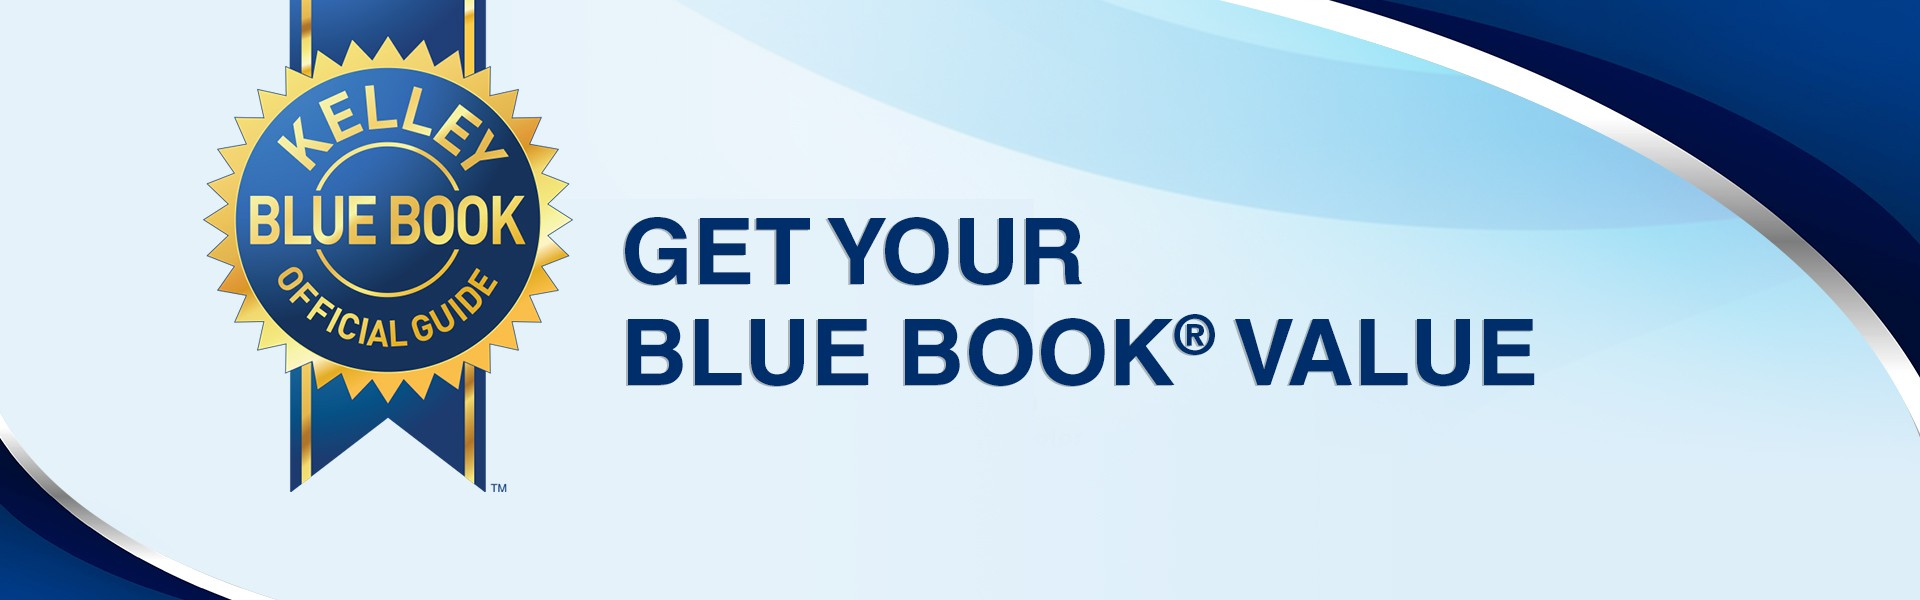 Get Your Blue Book Value